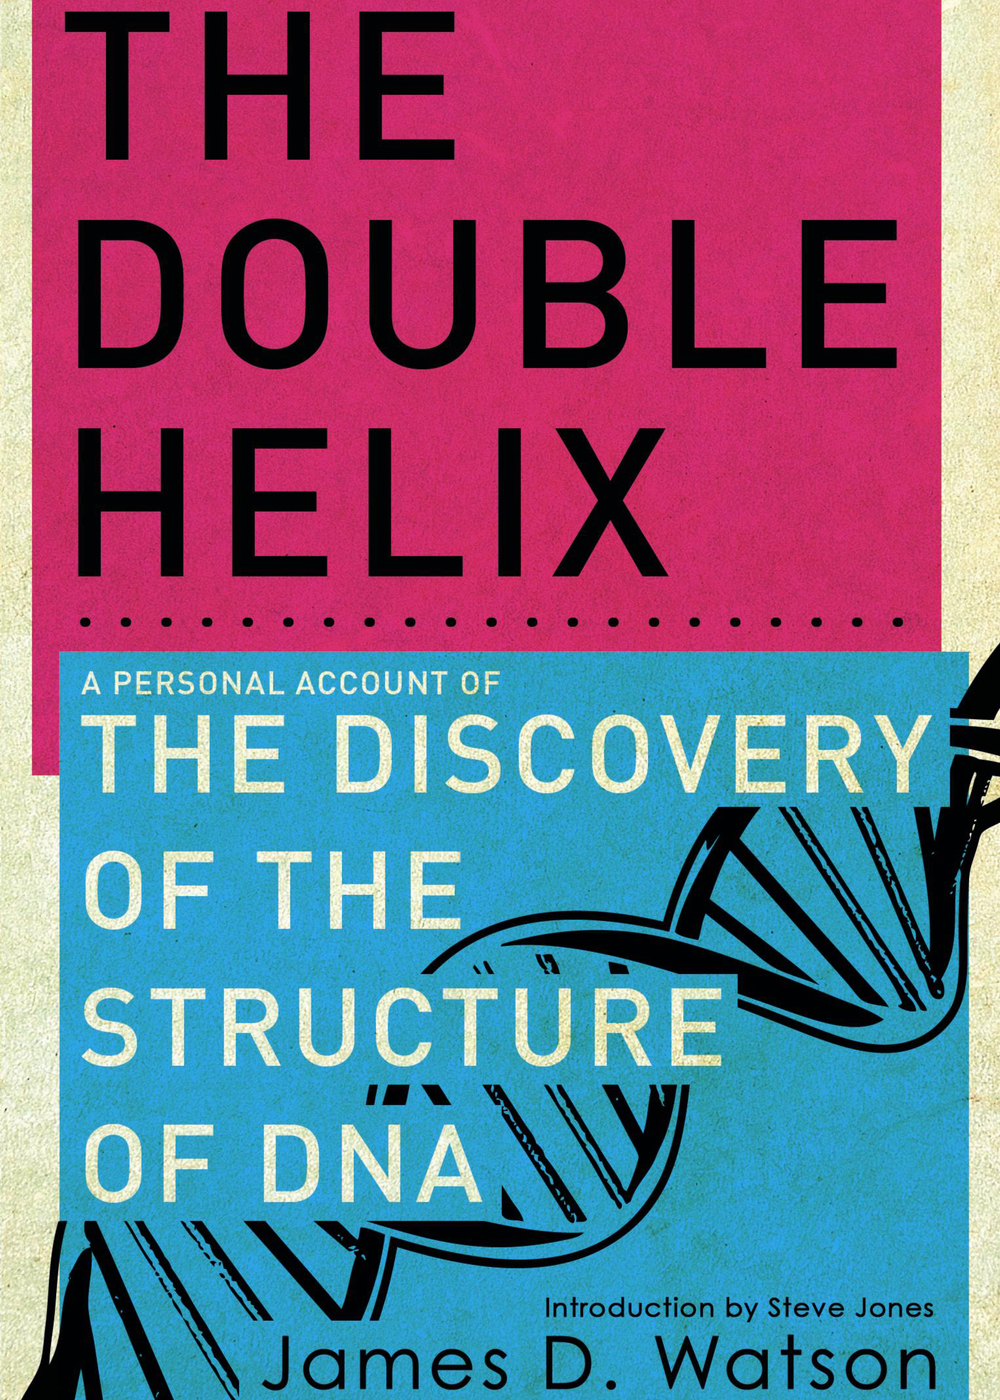 Watson, James - The Double Helix.jpg